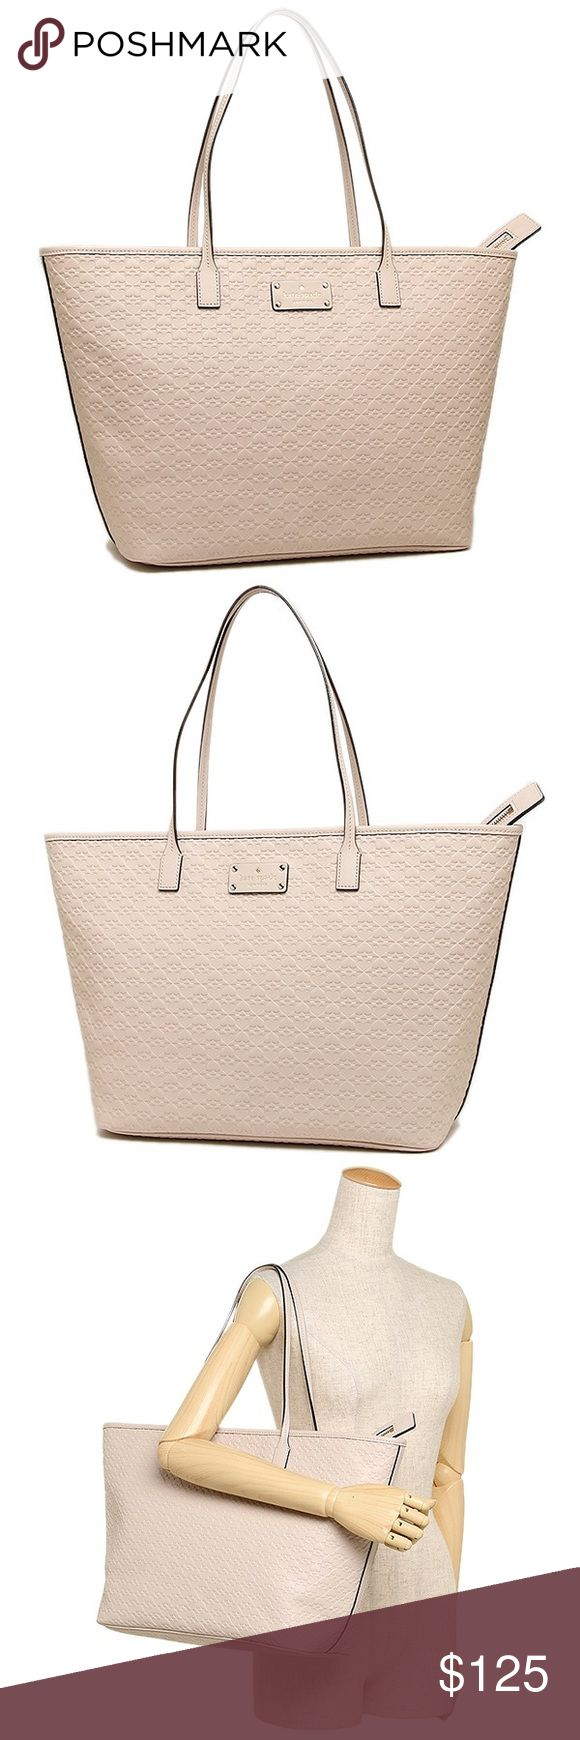 """Kate Spade • Penn place embossed Margareta, Pebble Kate Spade    Available in my closet : Black or Pebble (Tan cream)*  PRICE FOR ONE  14K Light Gold Tone Accents Coordinating Signature Kate Spade Lining  Spade Embossed Leather 9"""" Drop  13""""L bottom 18"""" top x 11.5""""H  x 6.5""""W Top Zip Closure 2 sidewall pockets 1 zippered pocket kate spade Bags Totes"""